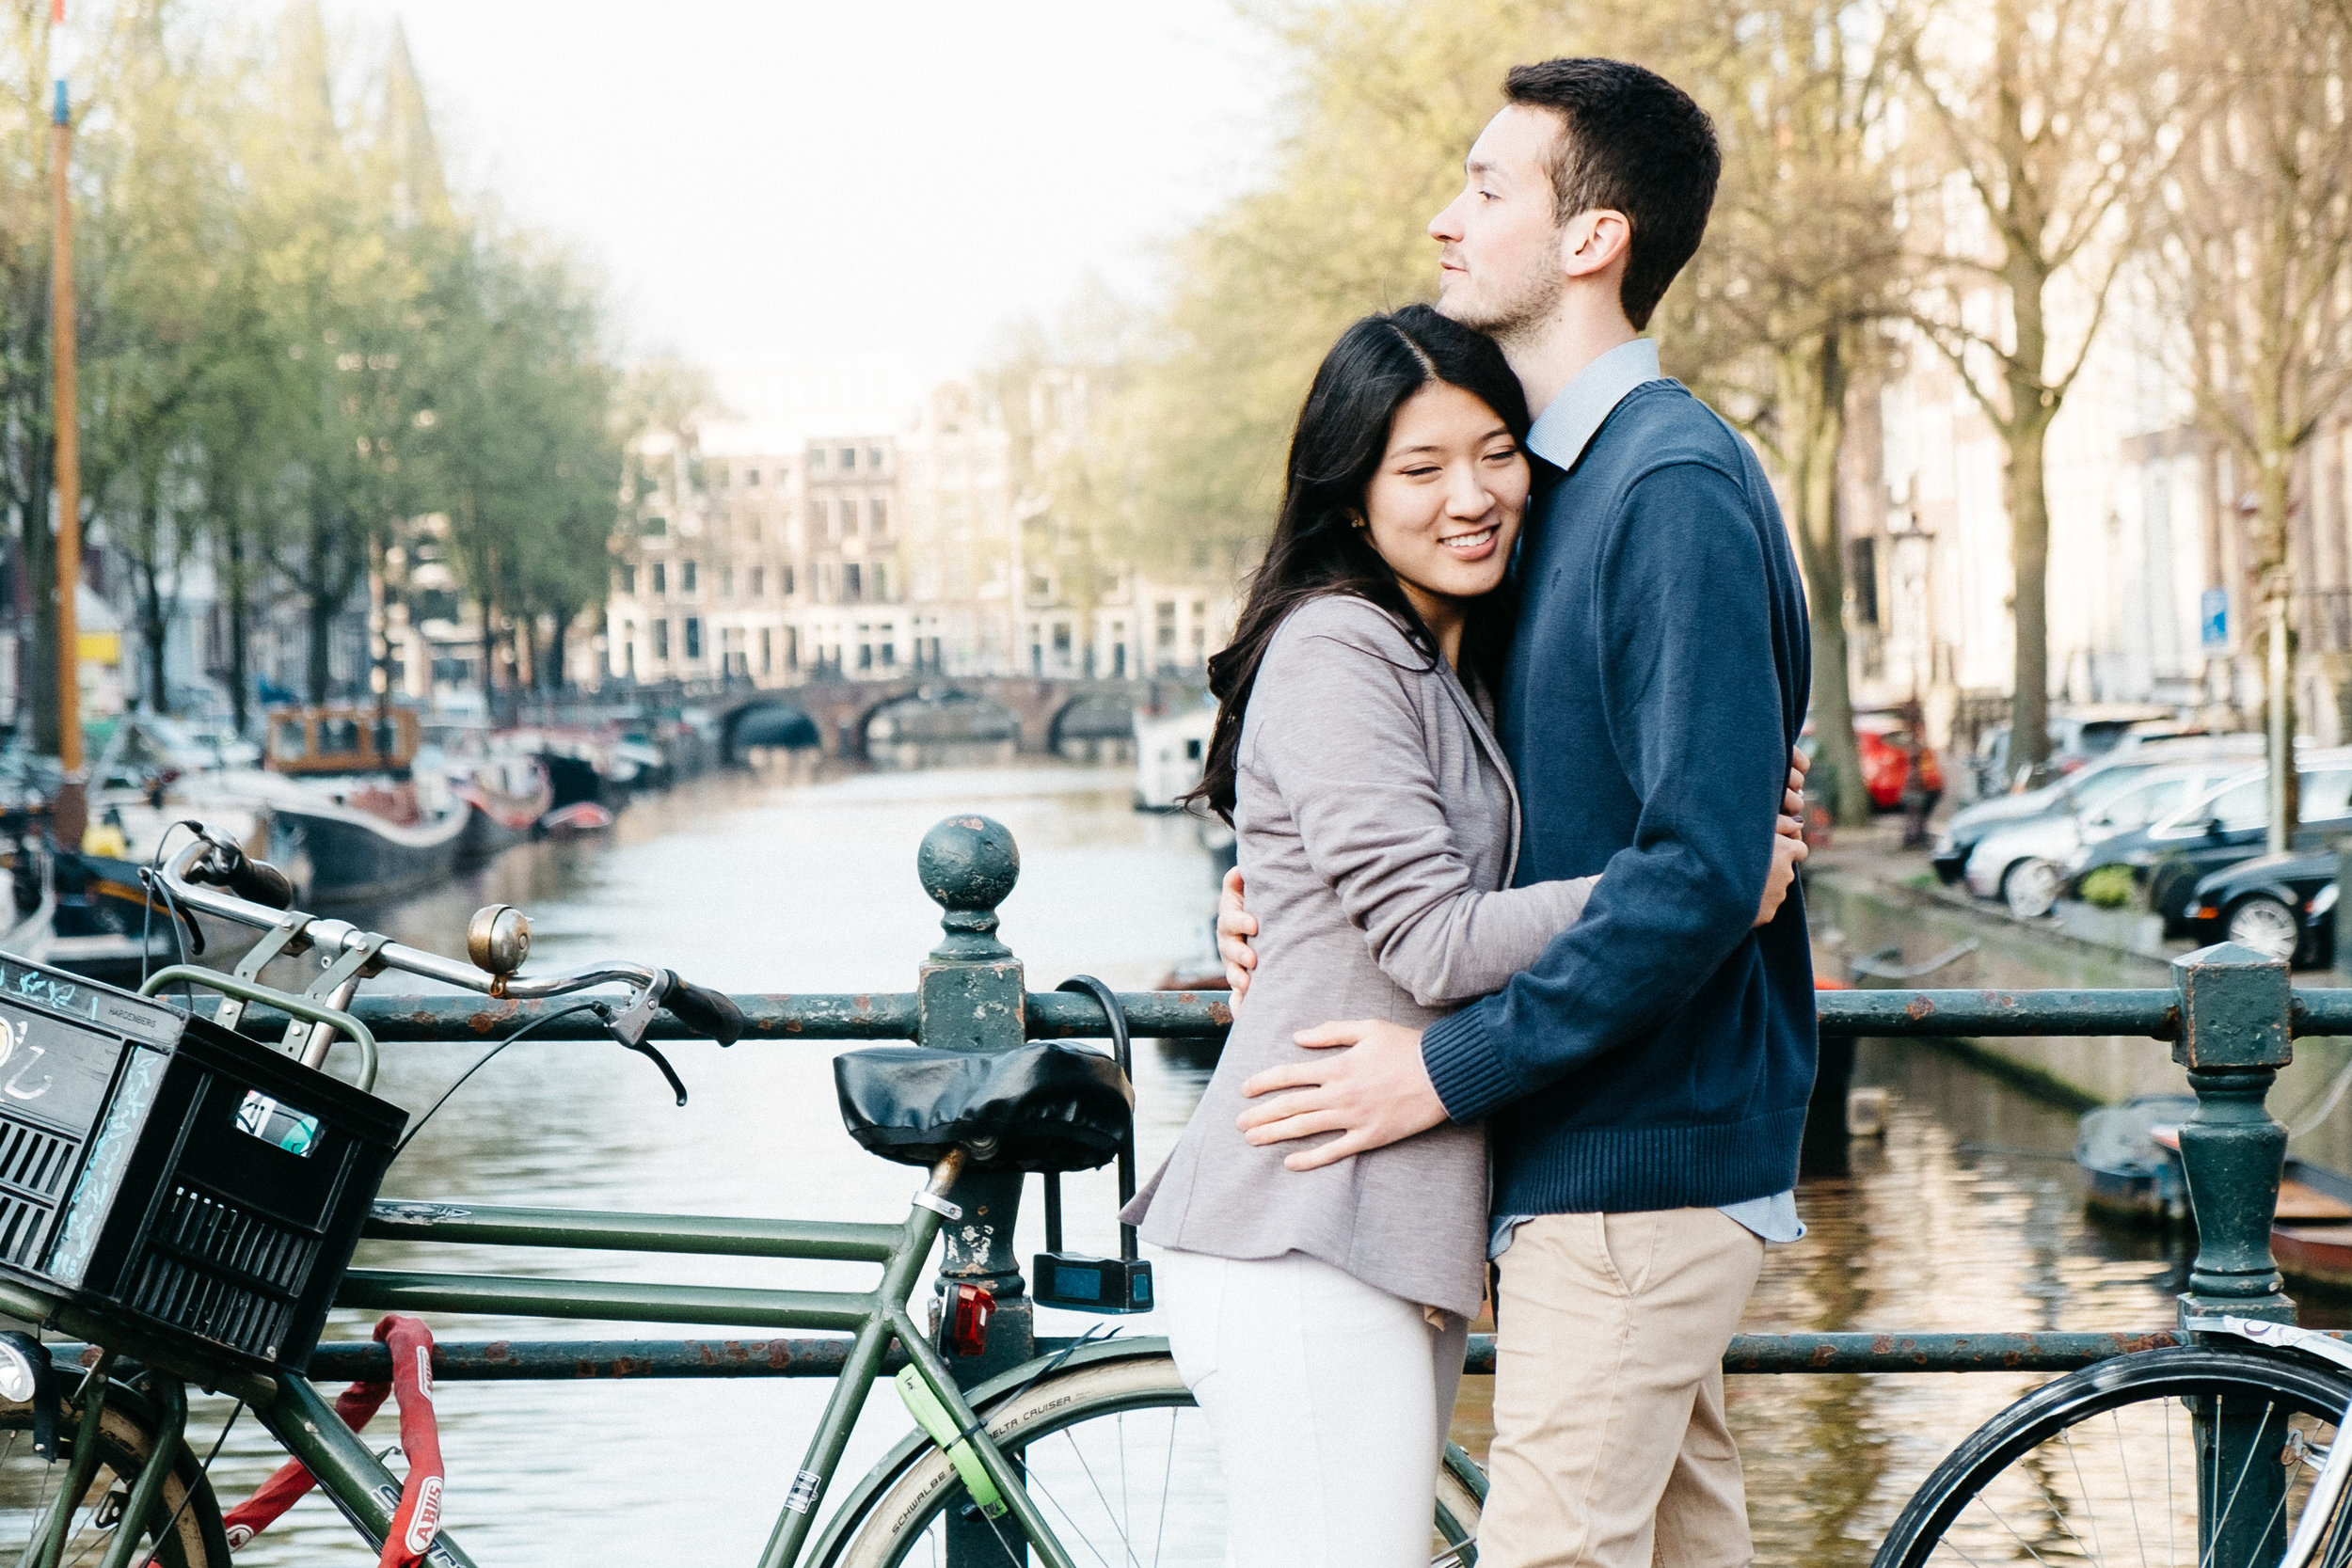 Thao & Janik in Amsterdam (18 of 51) - Jan Arsenovic Photography.jpg